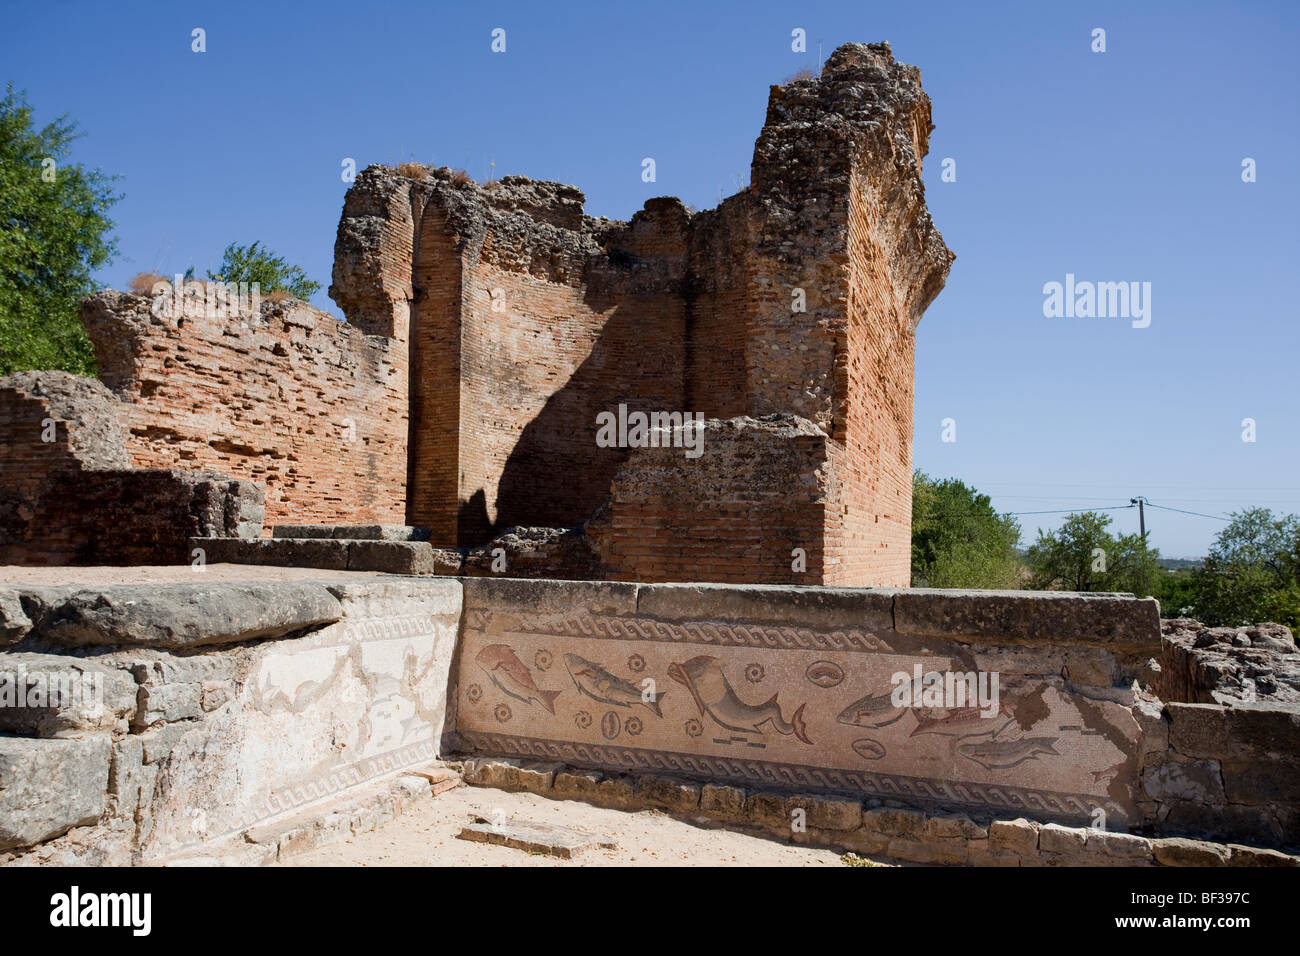 Portugal, Milreu, fragments of the Fish mosaic - Stock Image